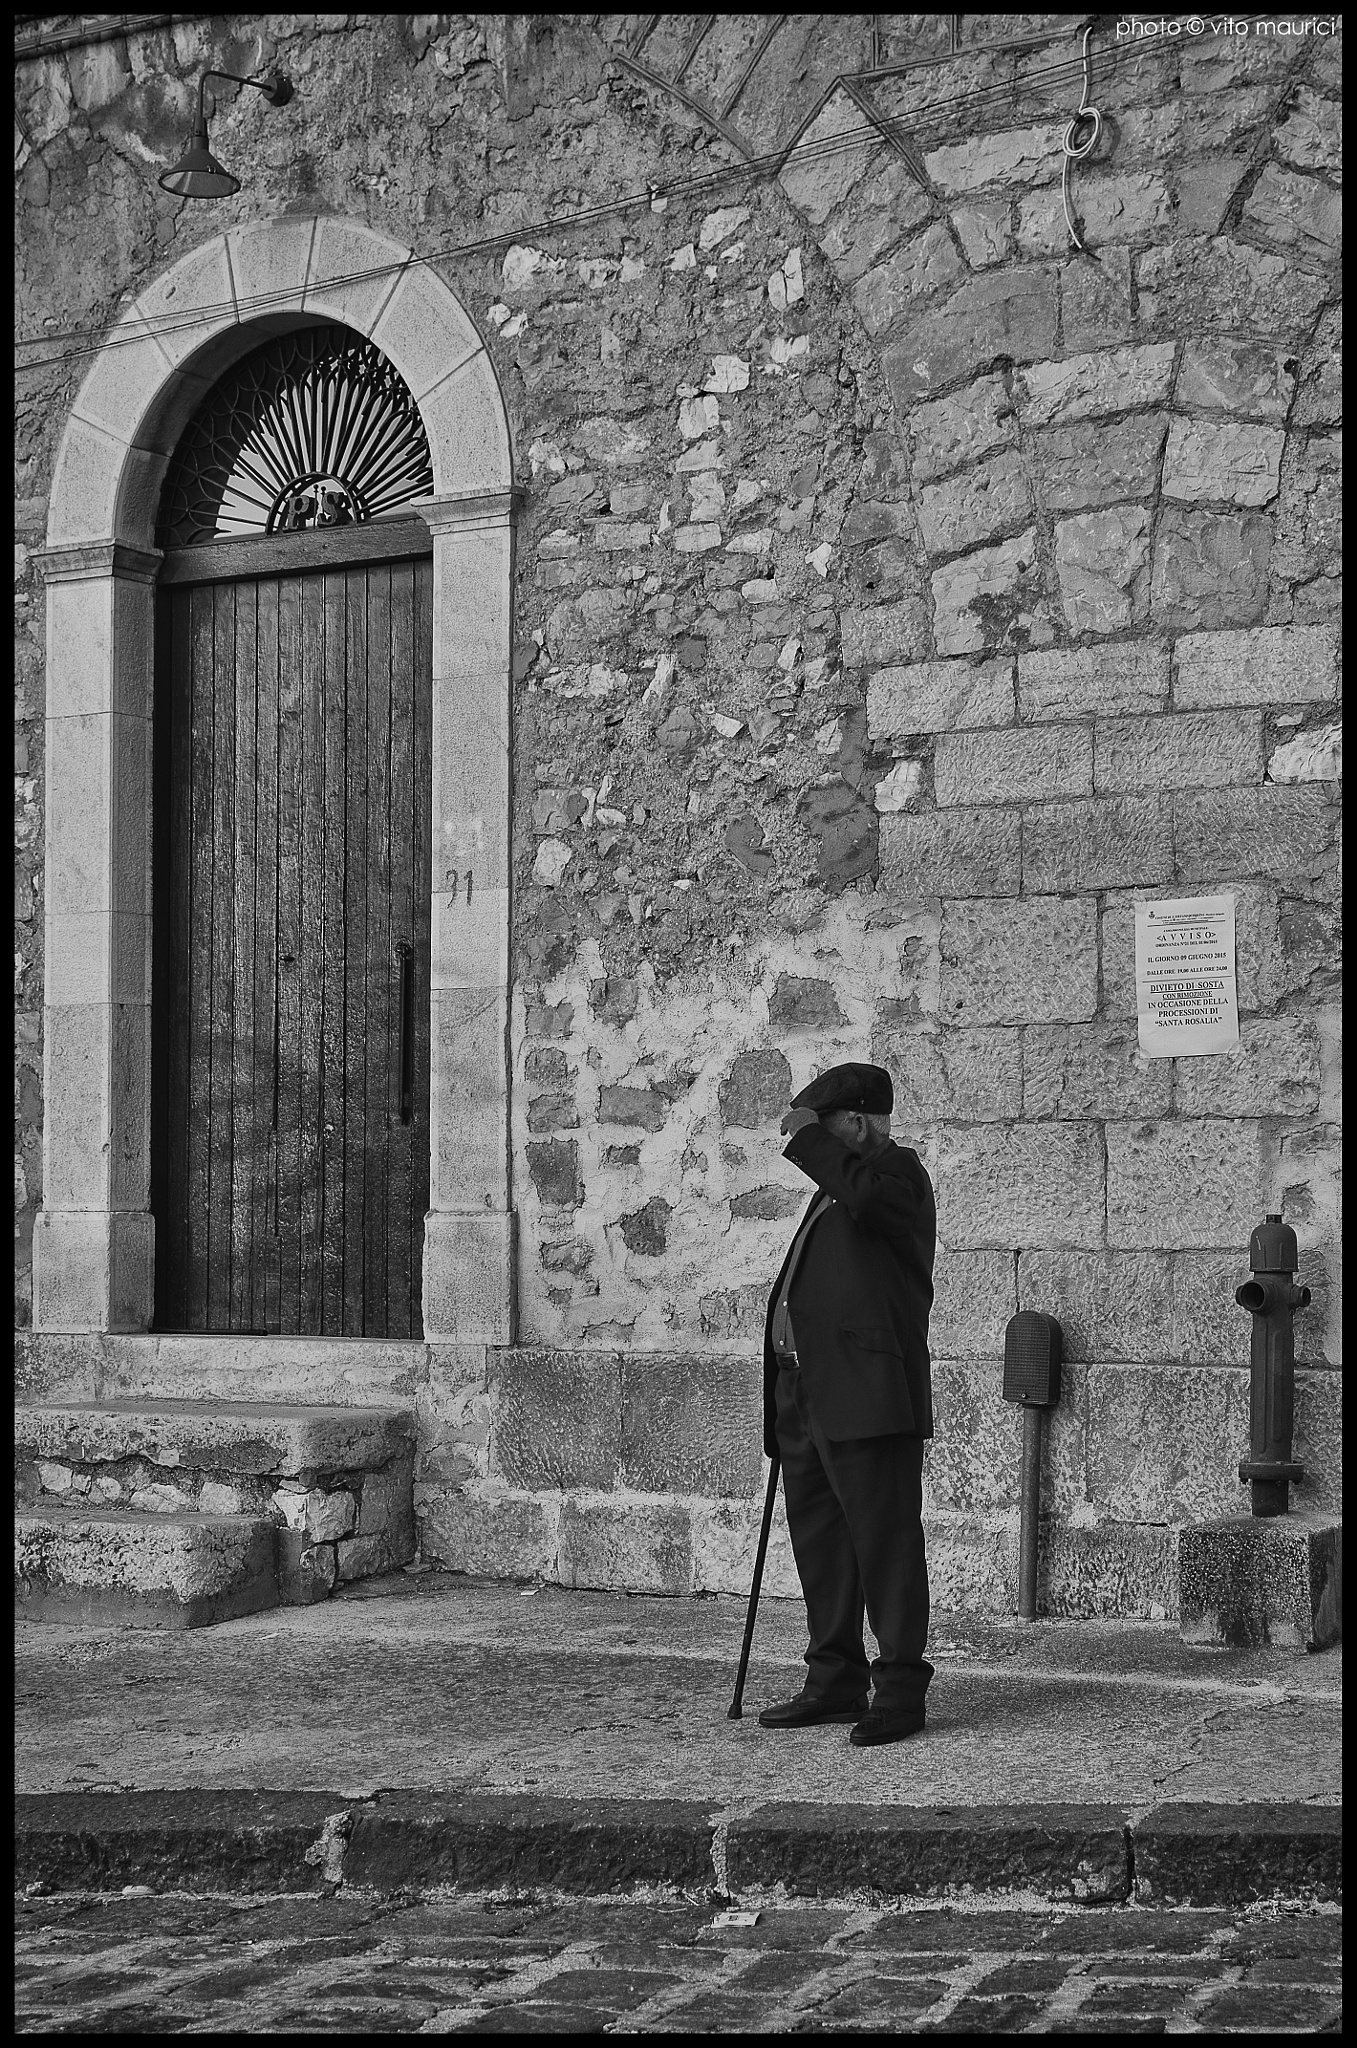 Sicily 2  by Vito Maurici